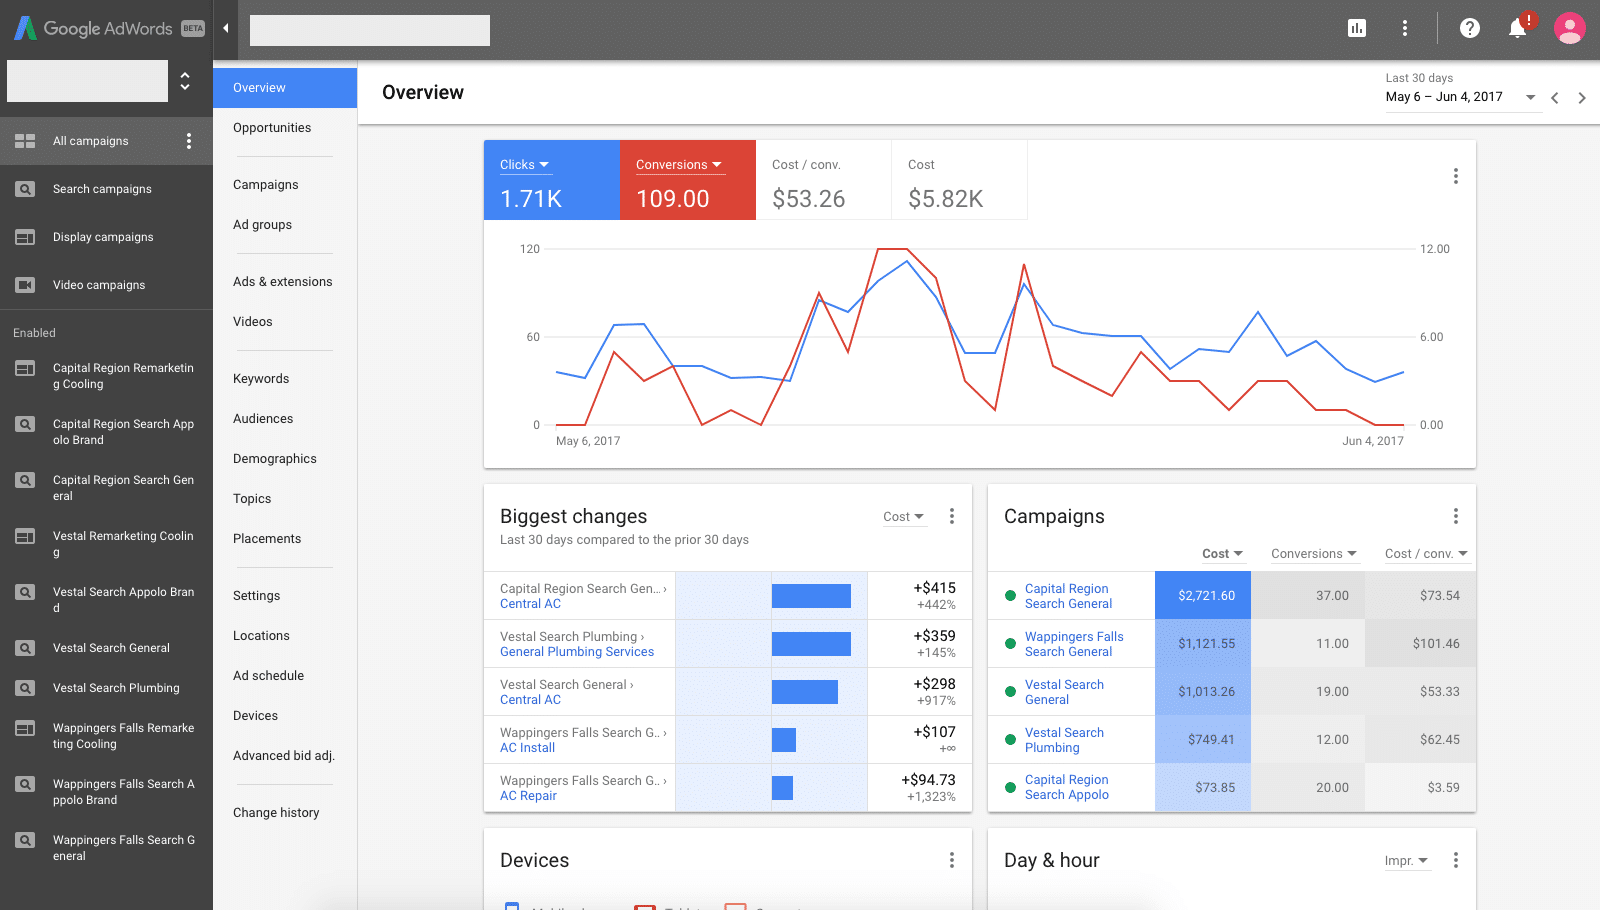 google-adwords-overview